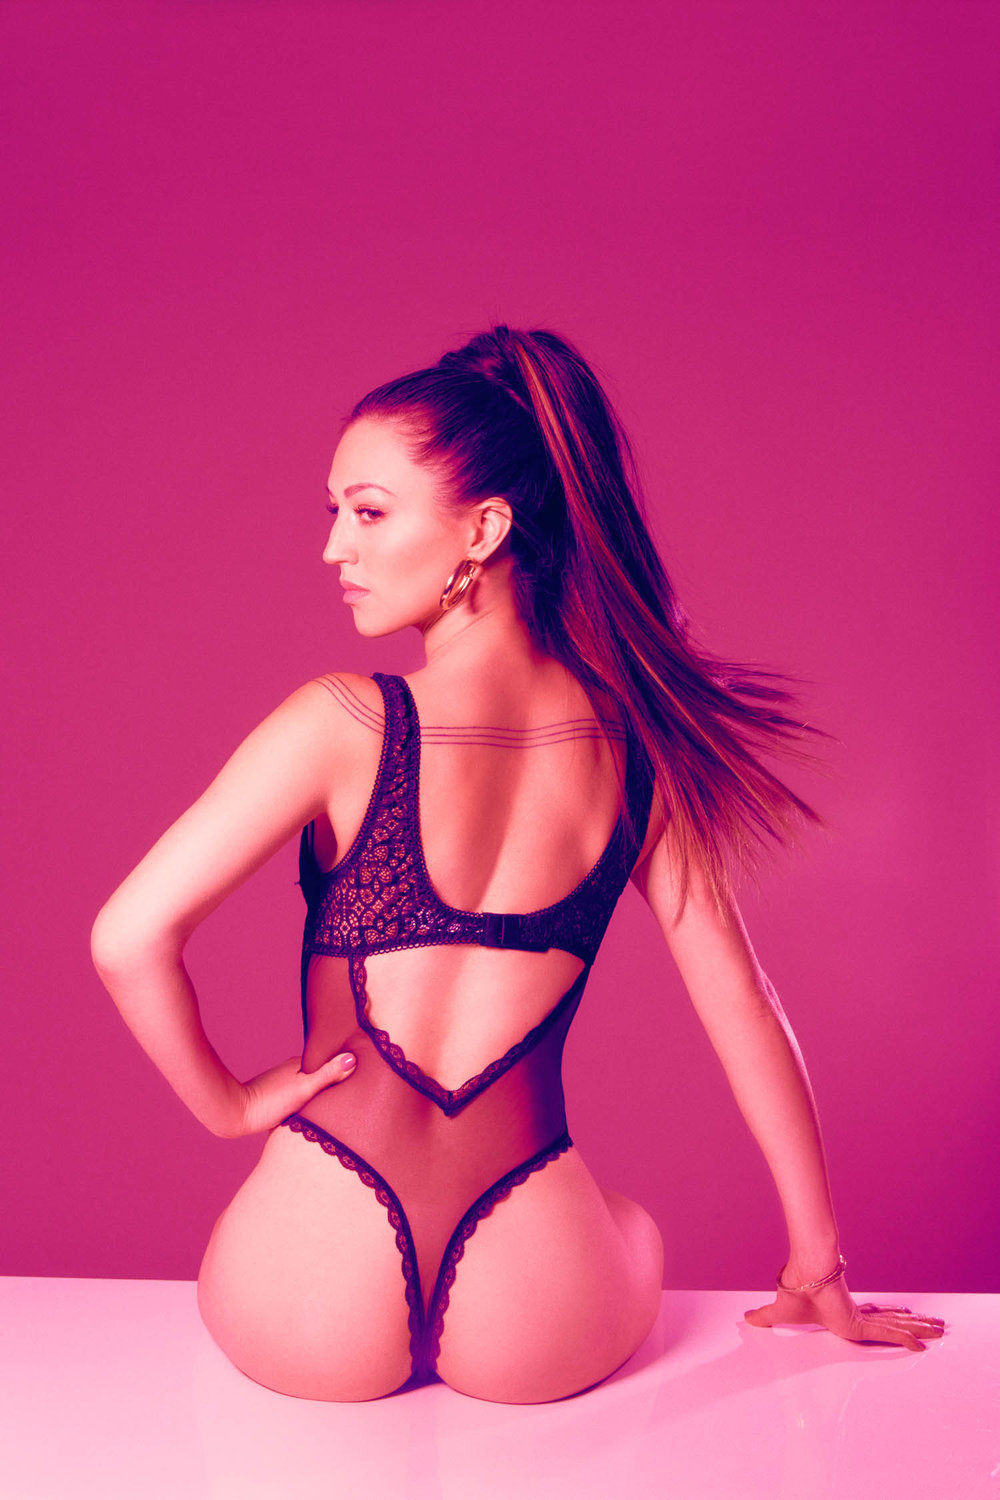 7 Rings boudoir photography with ponytail